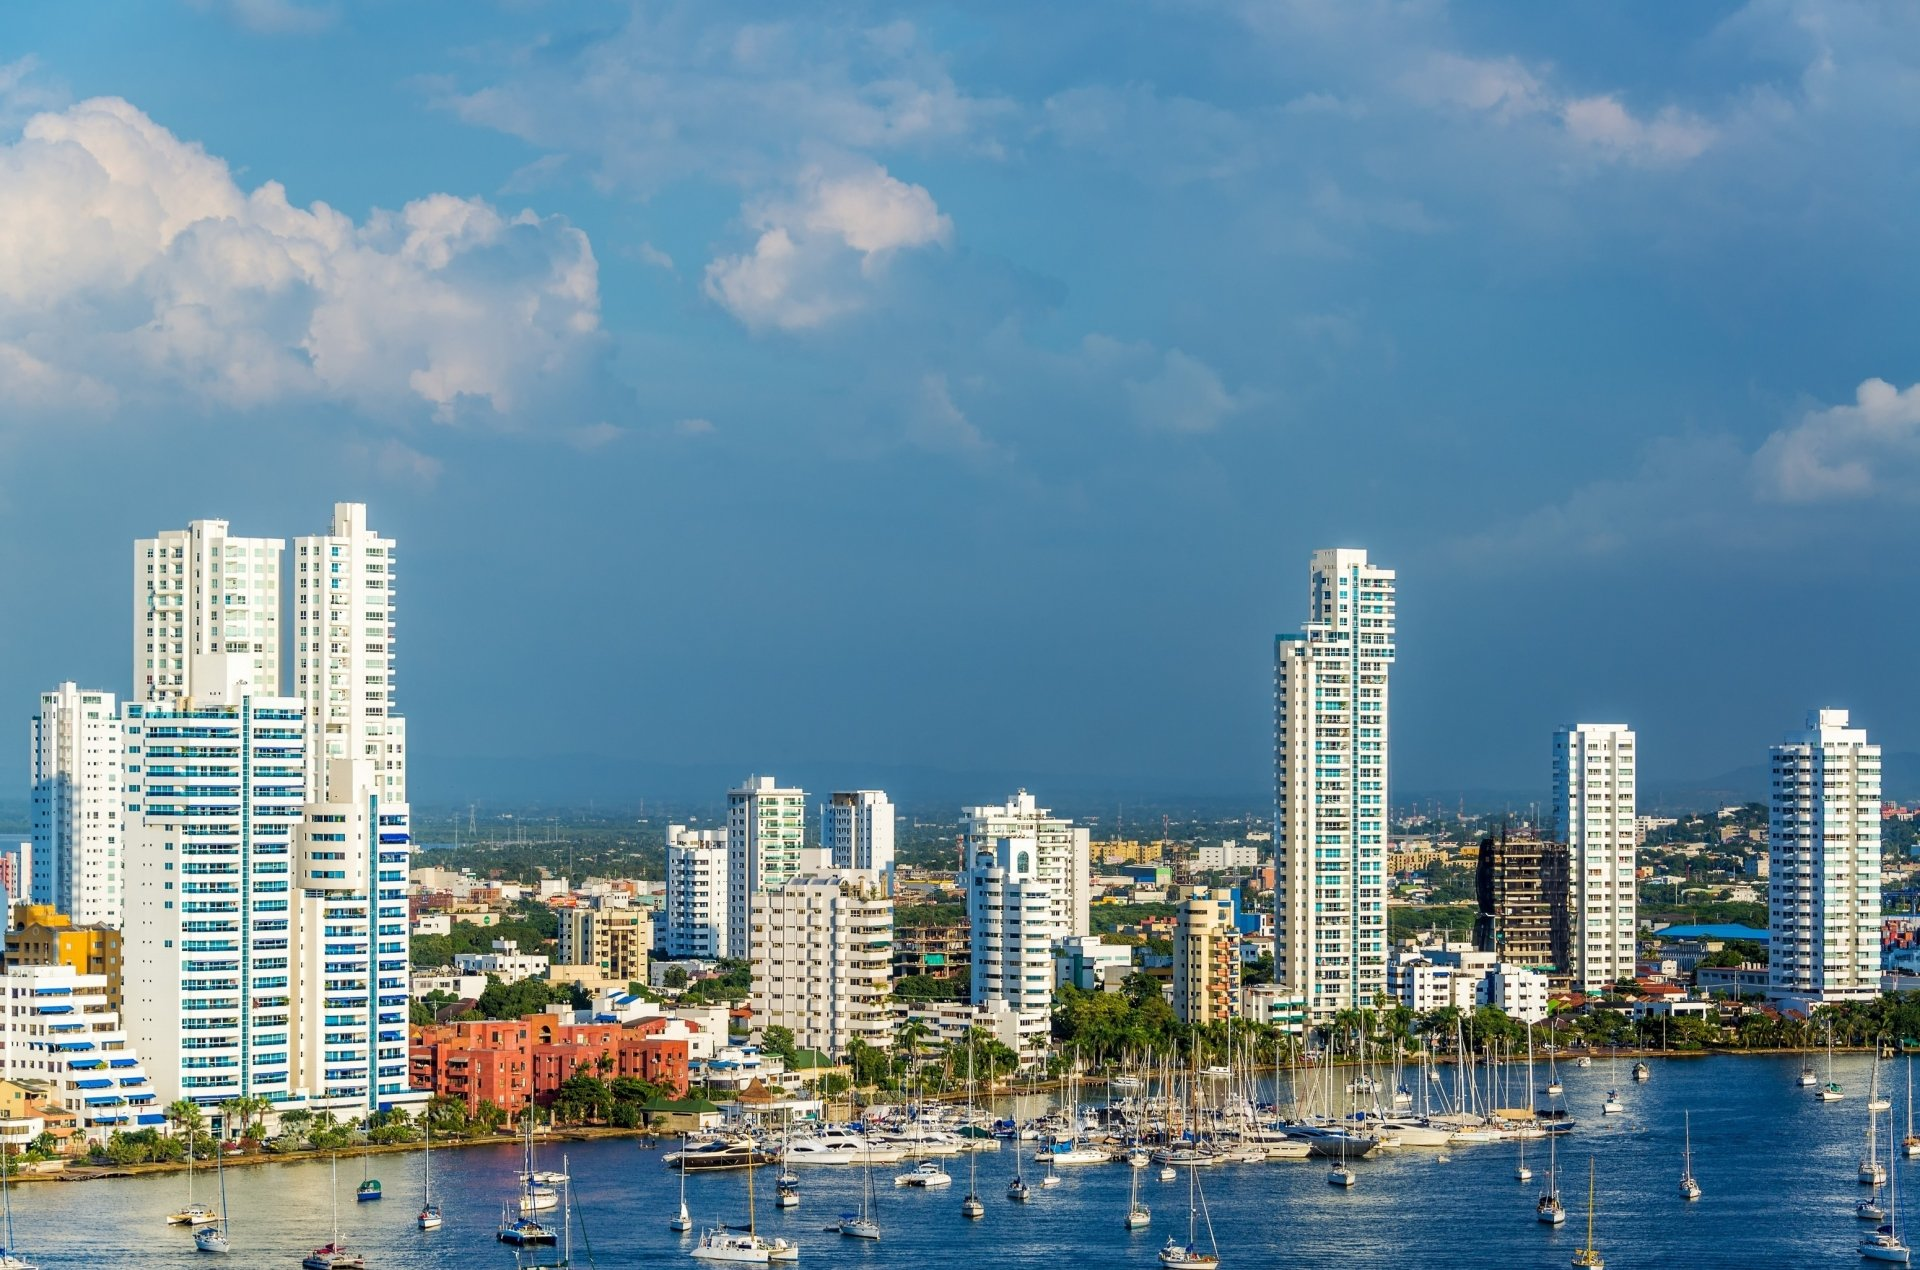 2 Cartagena Colombia Hd Wallpapers Background Images Wallpaper Abyss